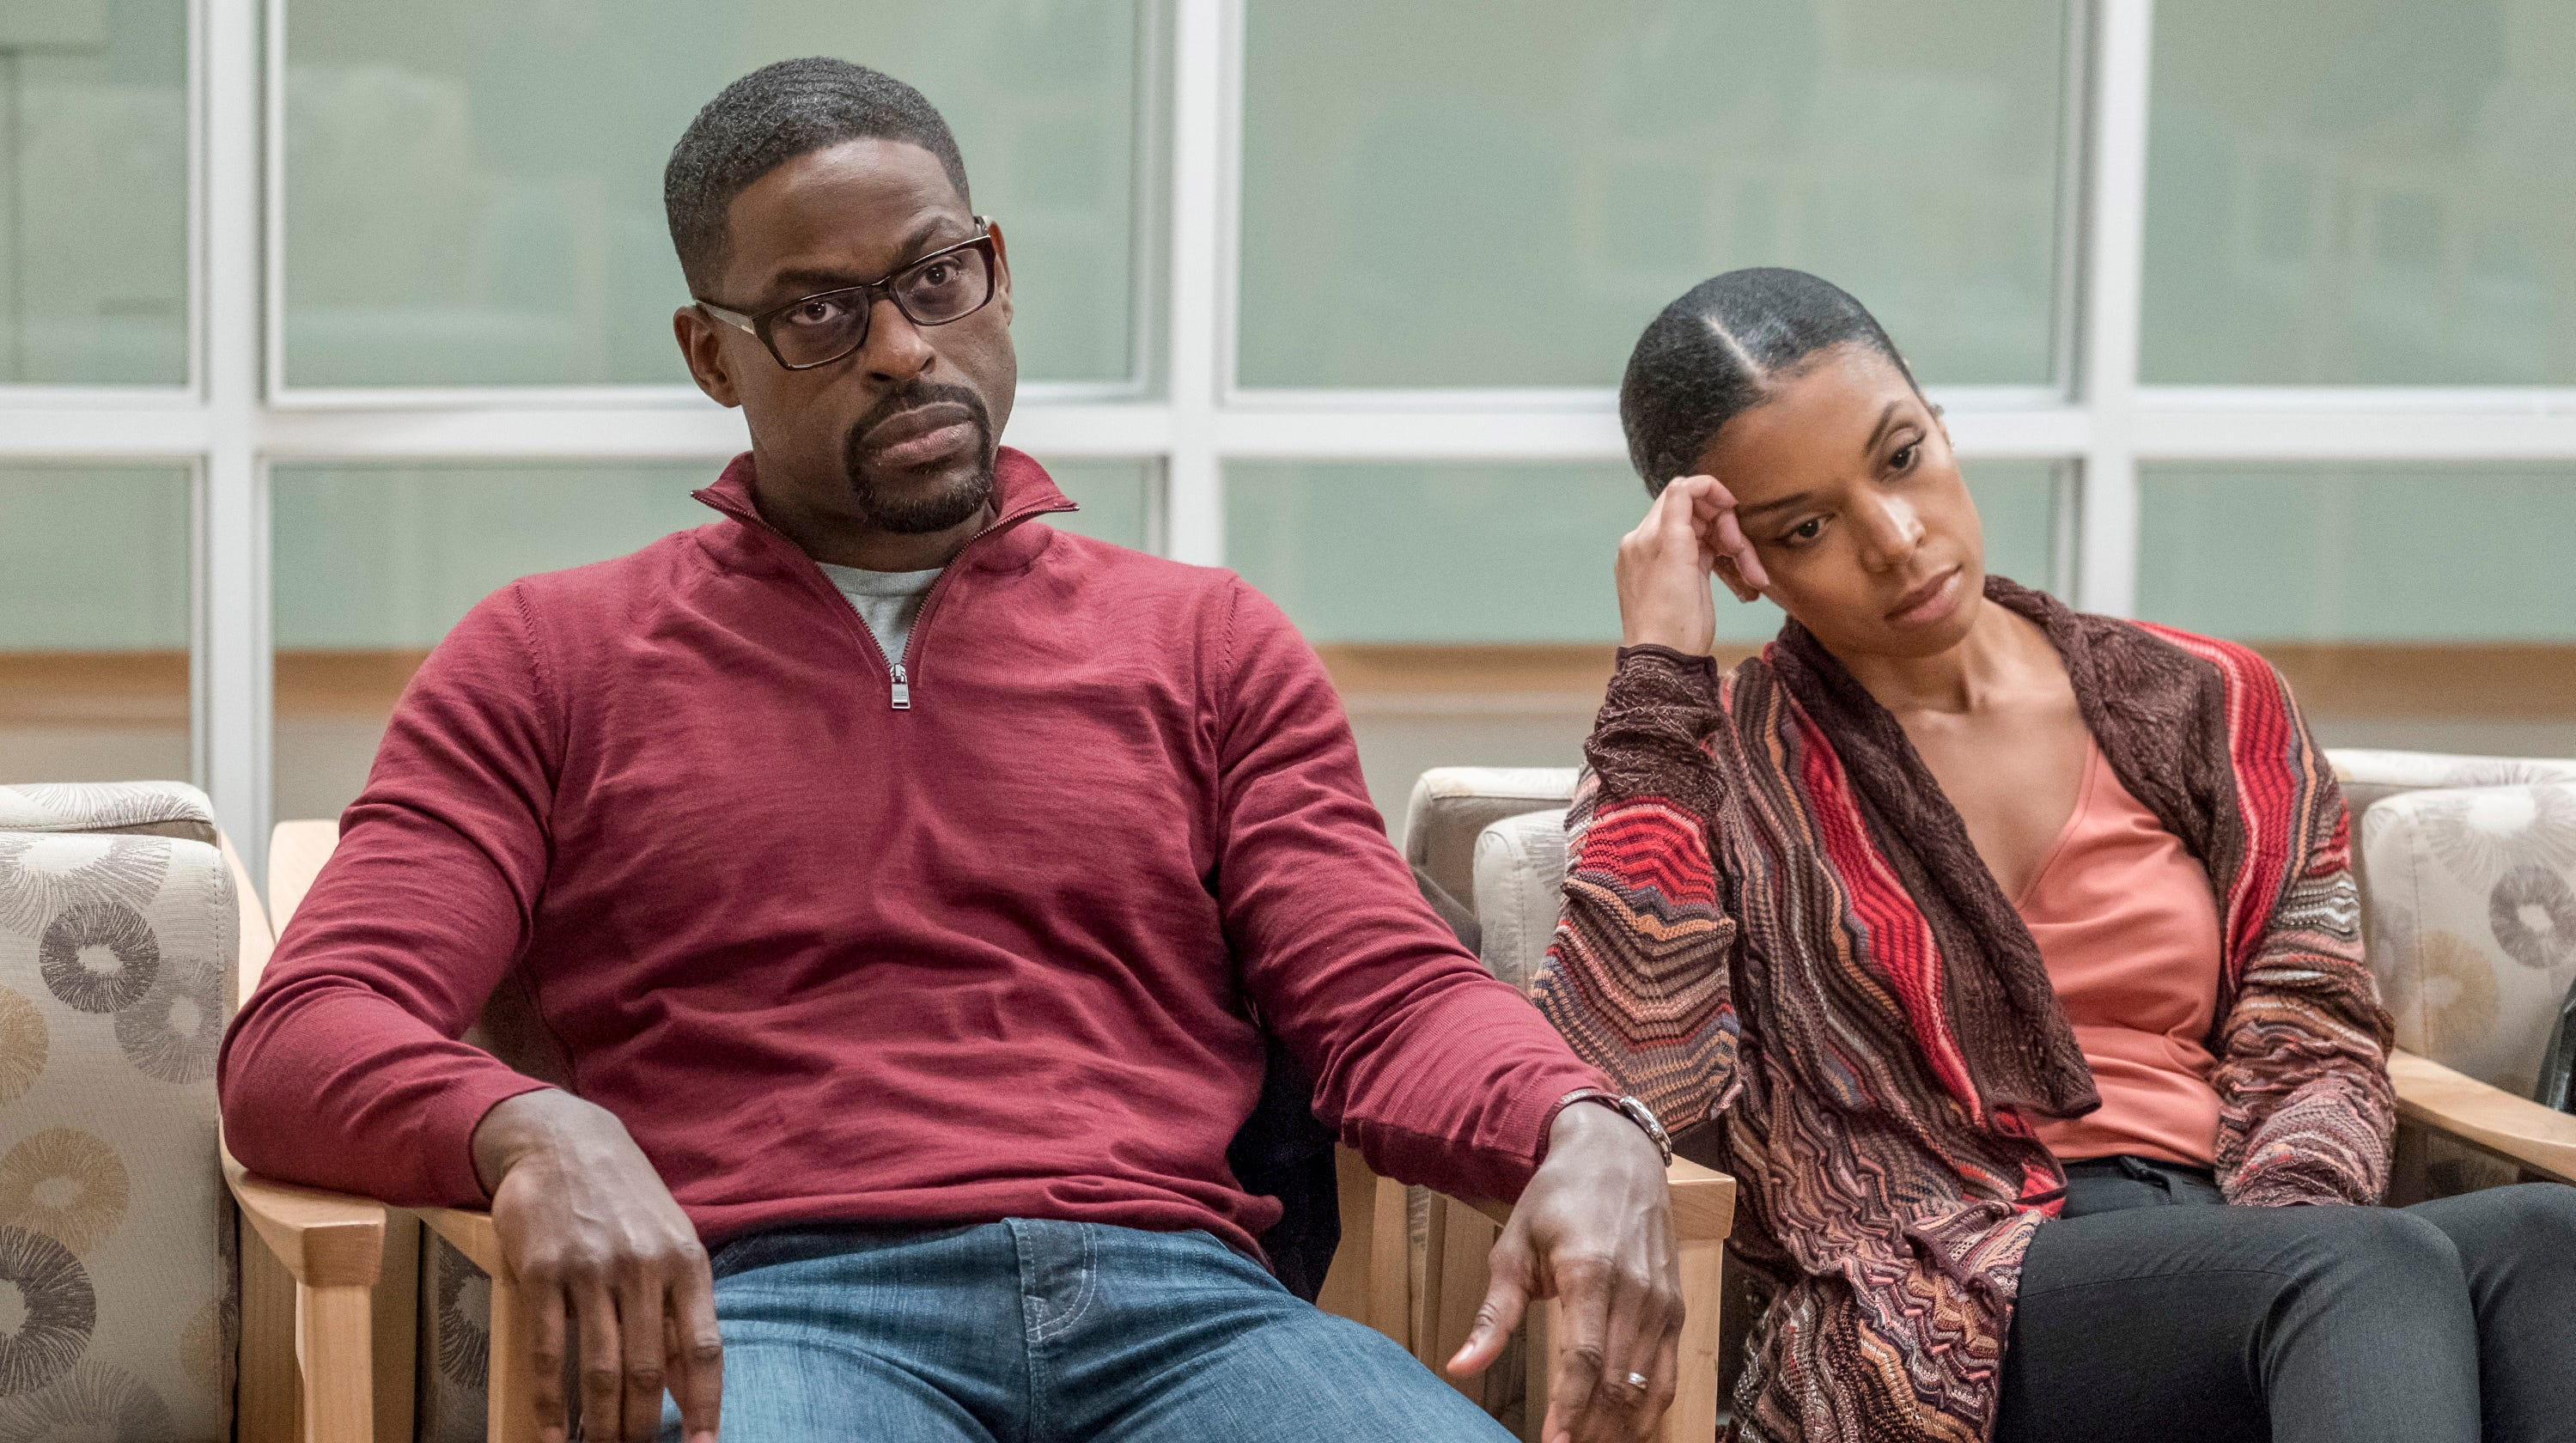 'This Is Us' recap: Things fall apart for the Pearsons